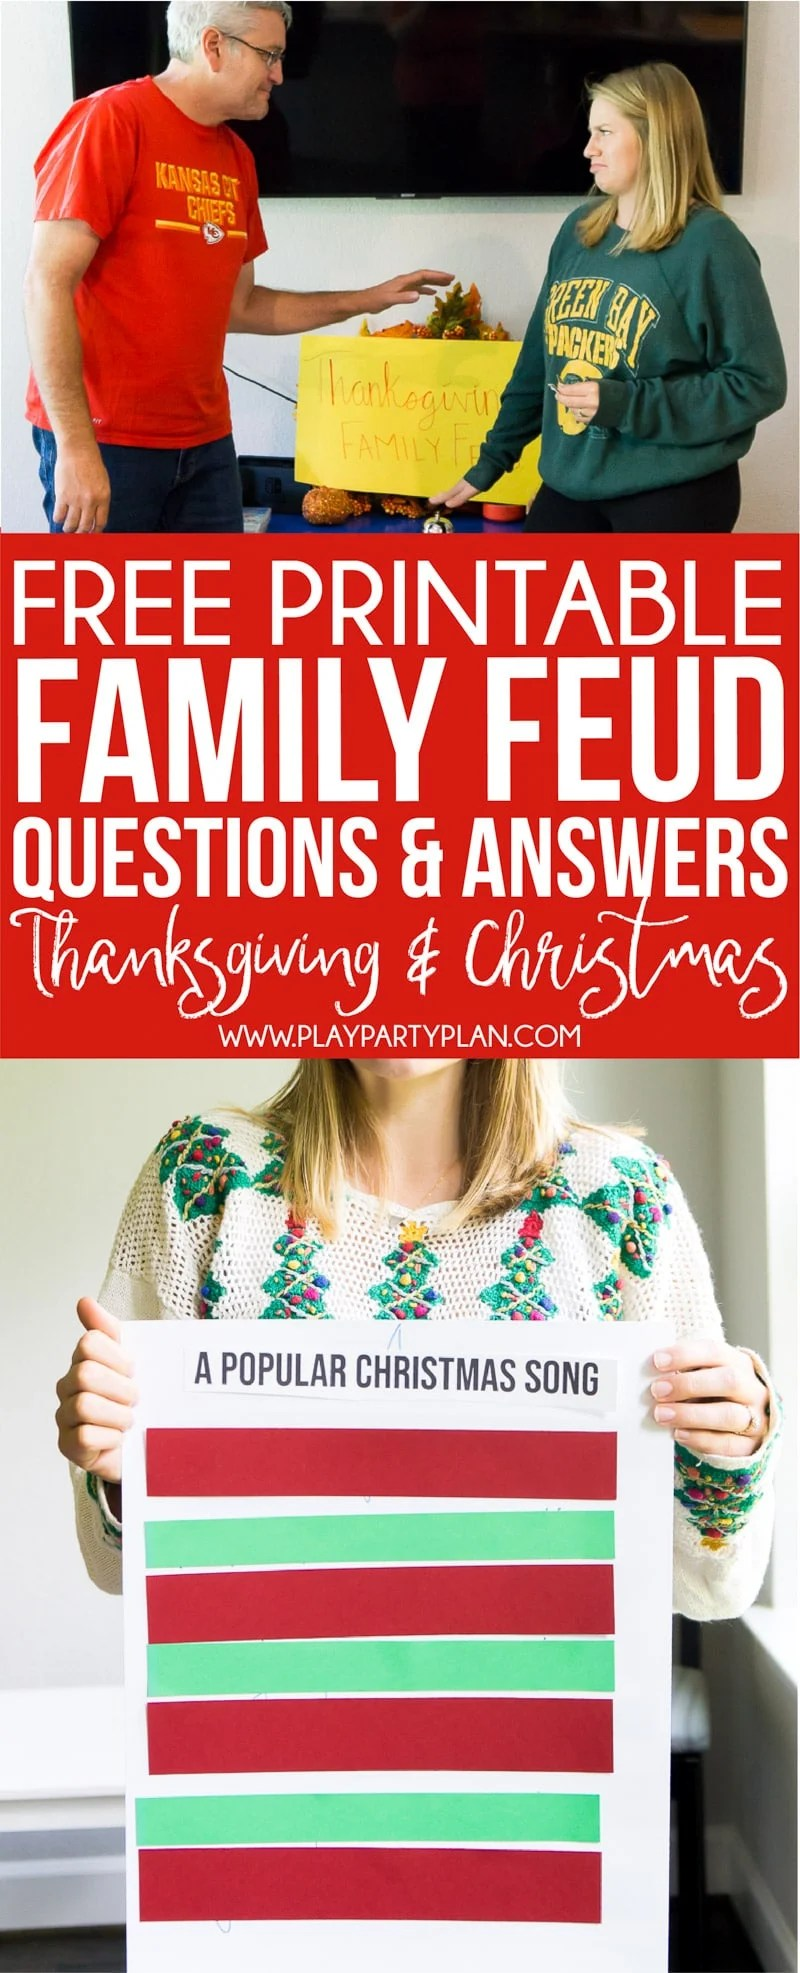 free holiday family feud